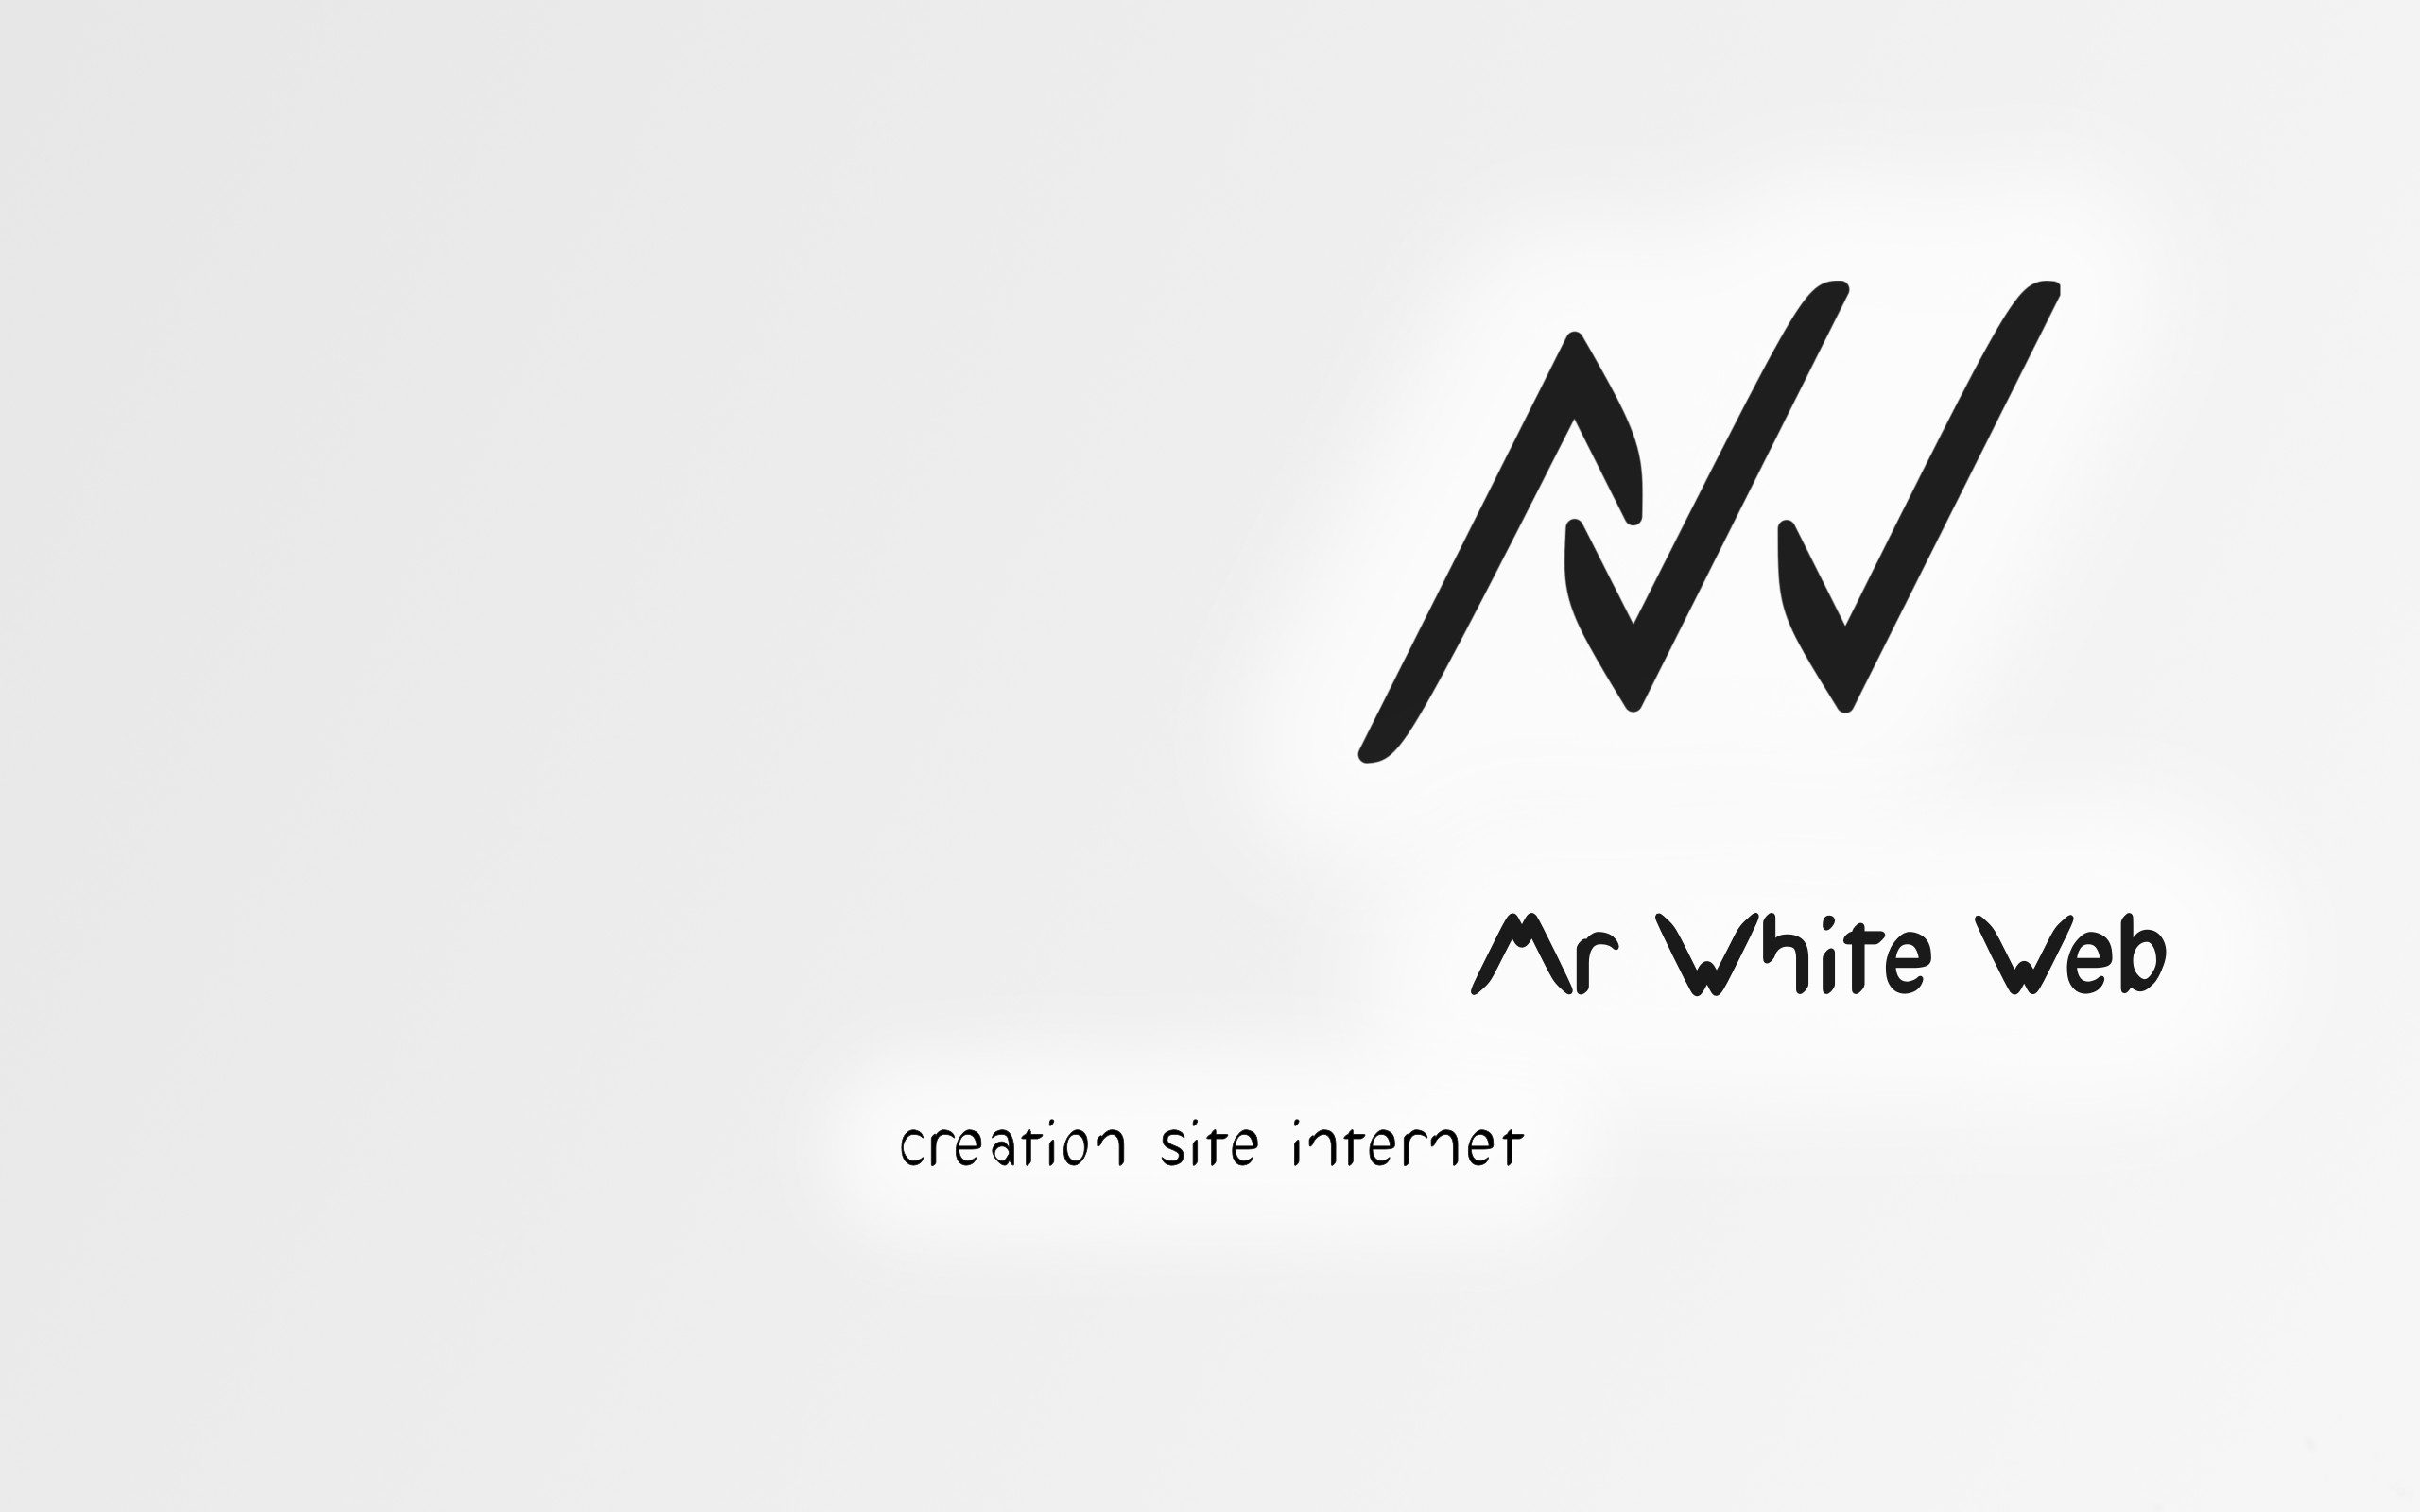 logo mr white web